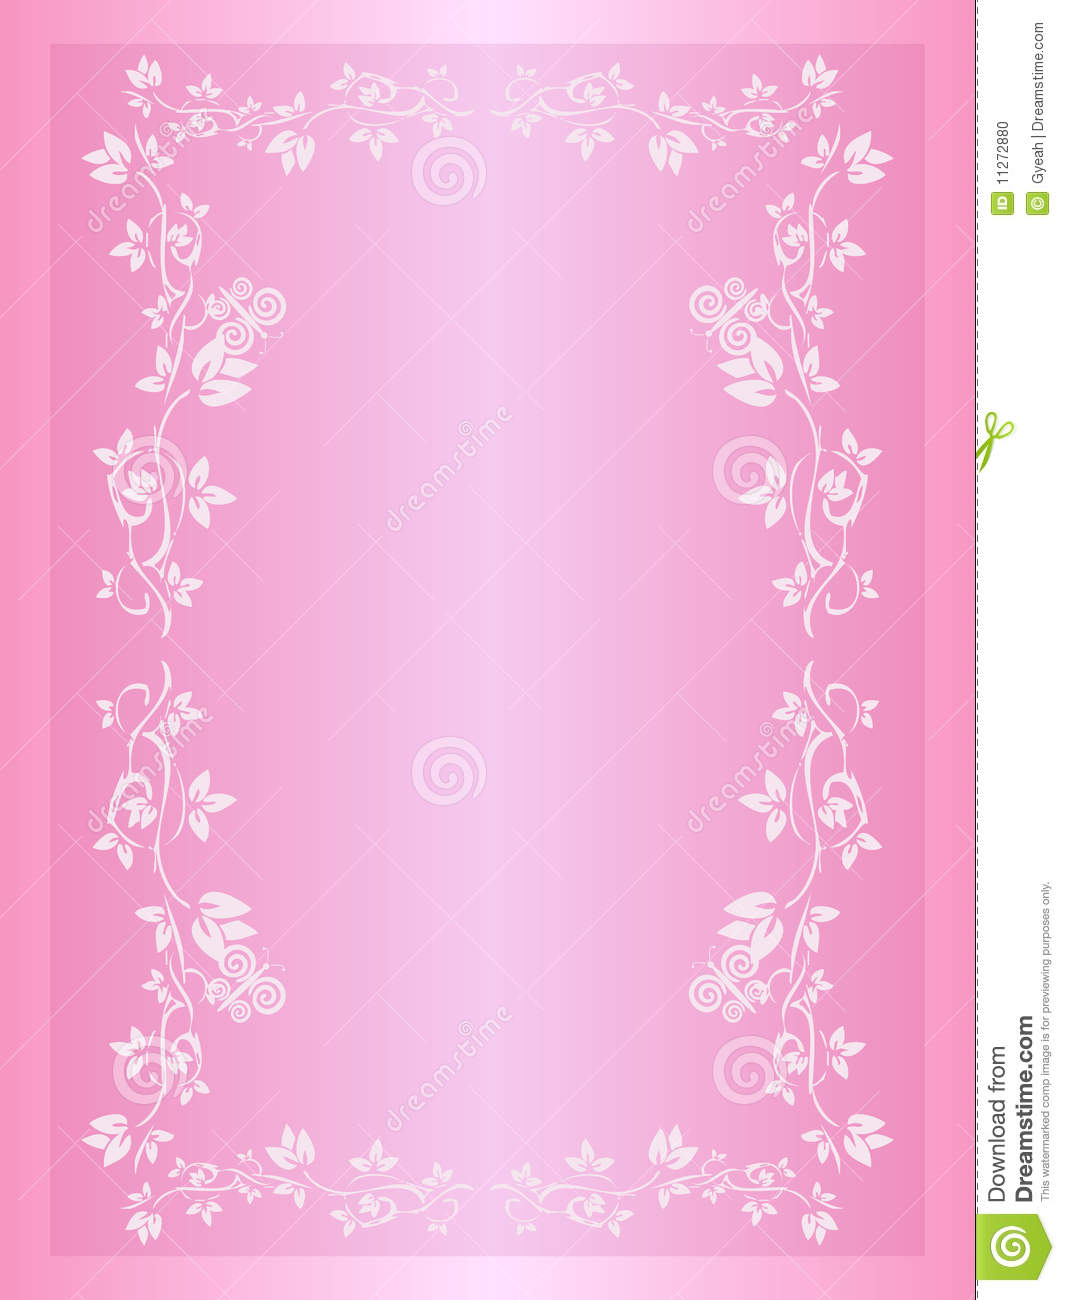 Background Wallpaper Hd Pink Invitation Best Image Background